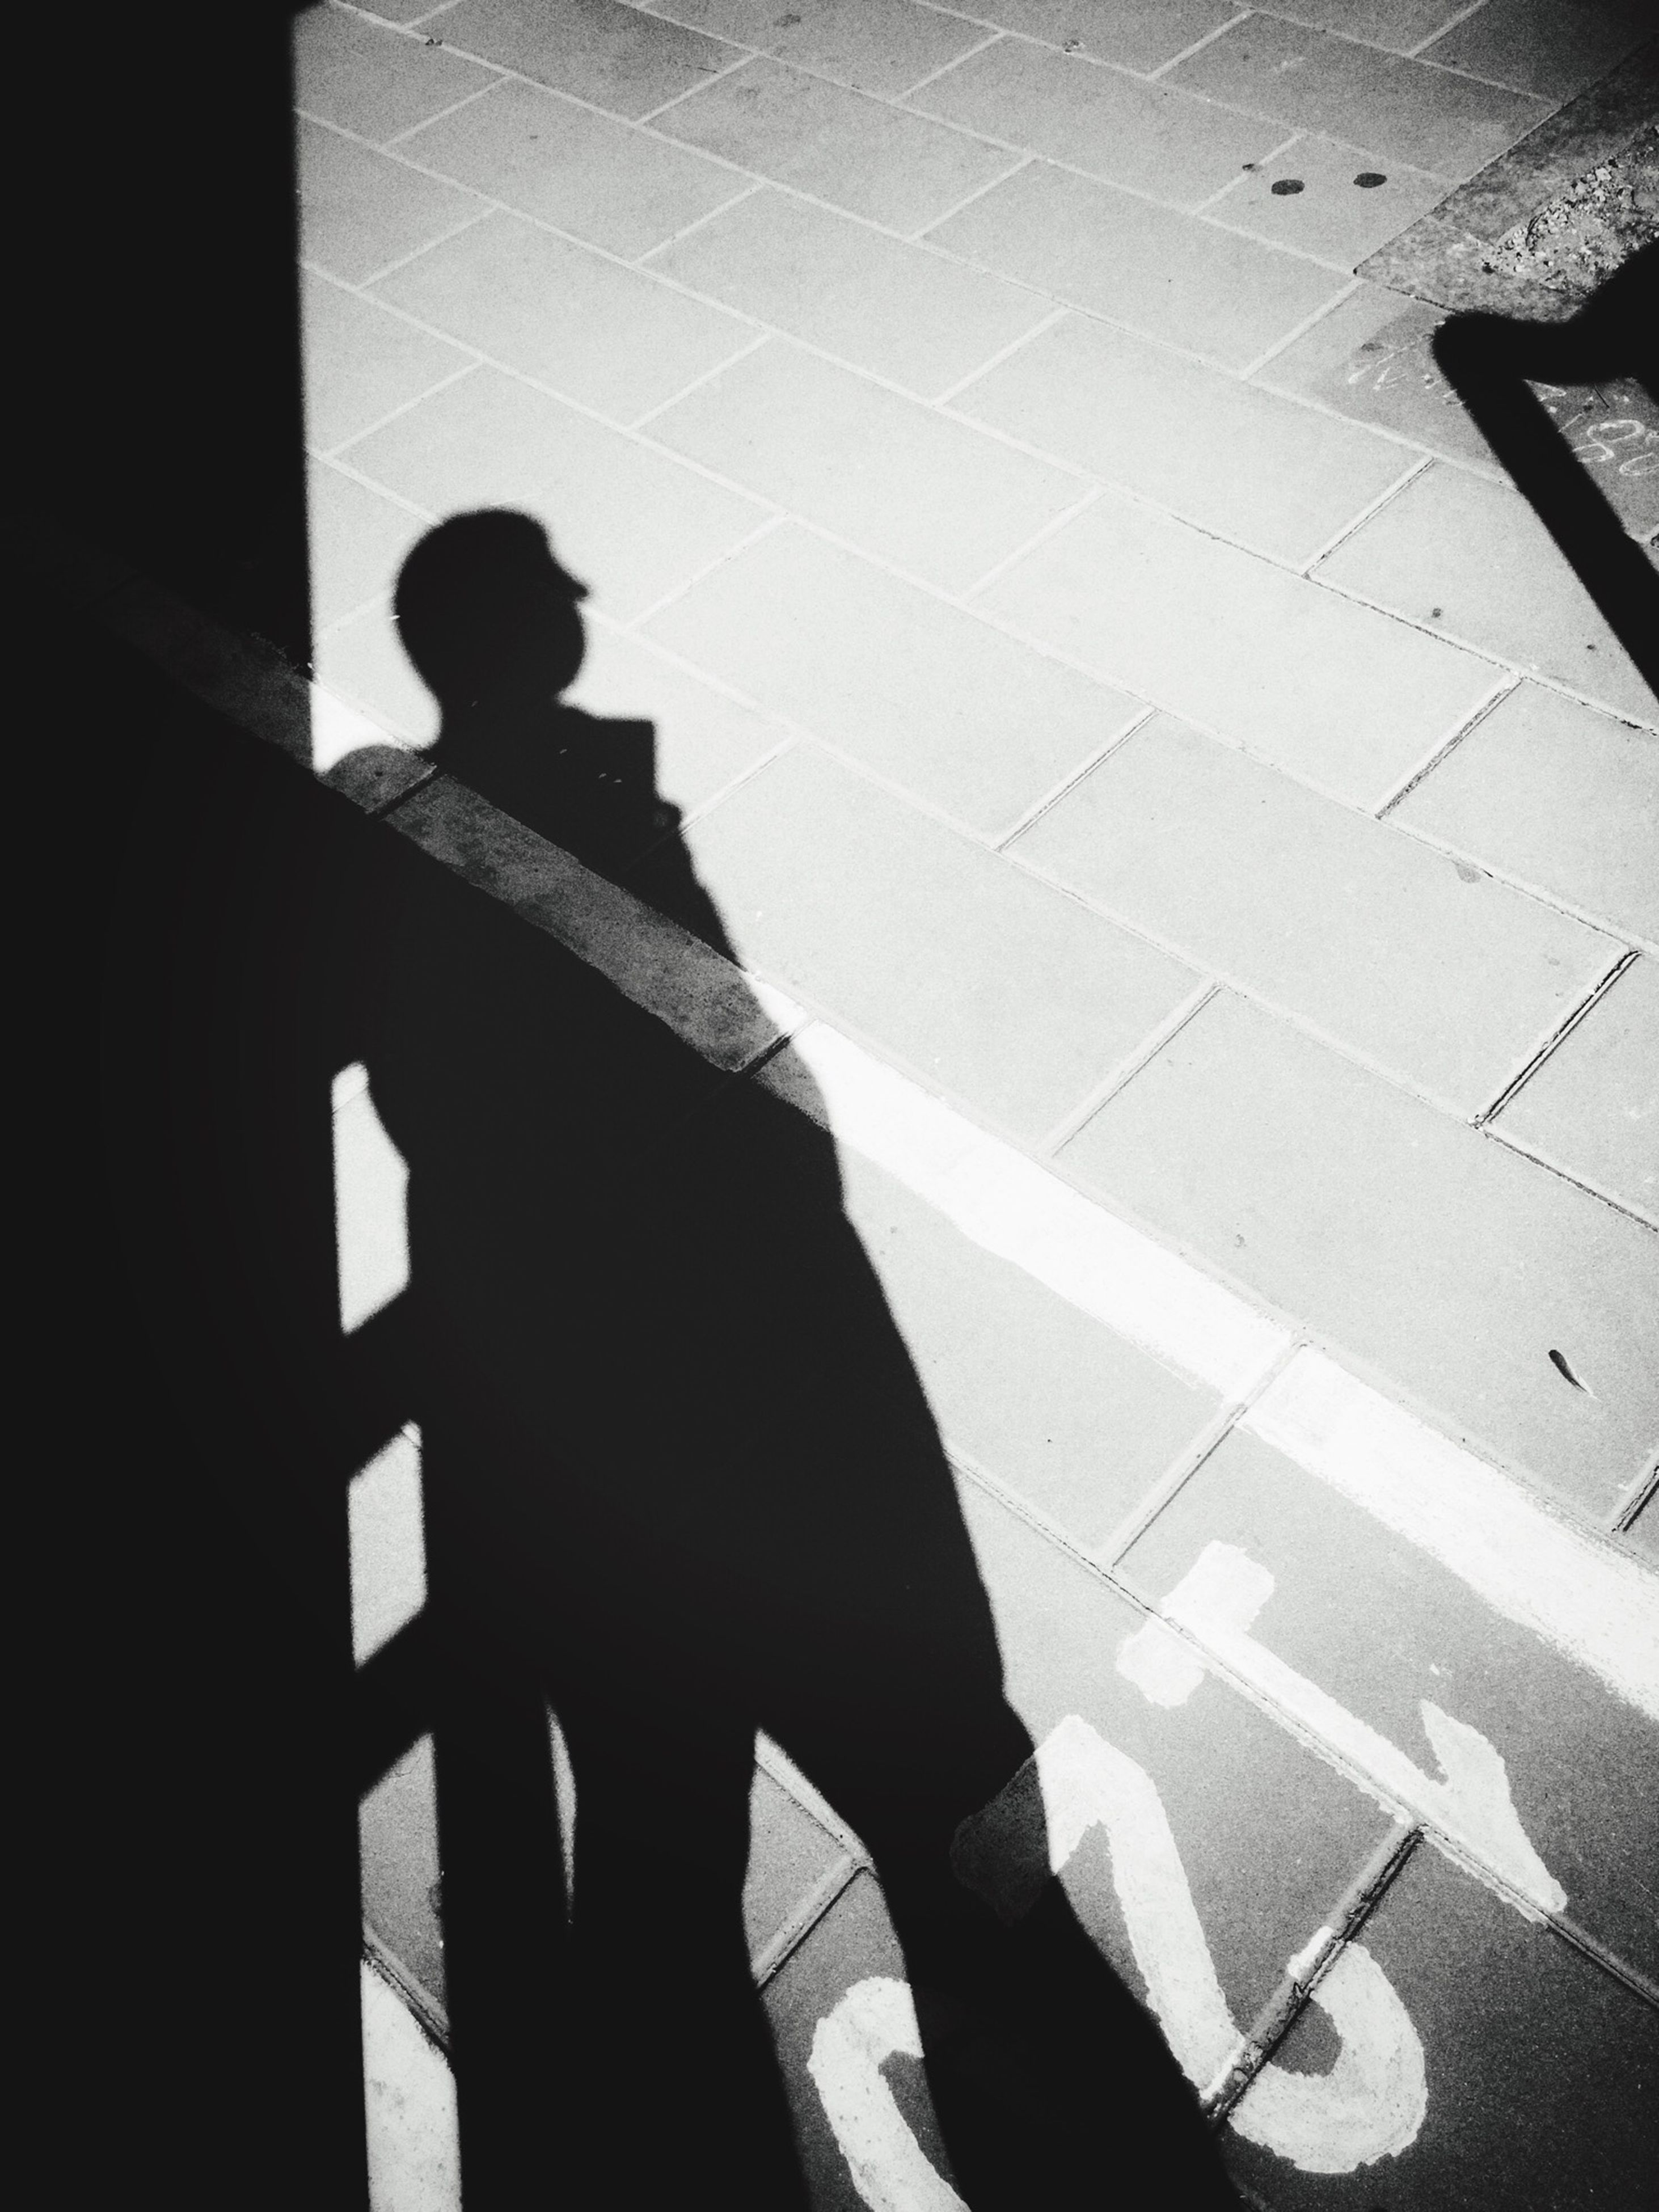 shadow, silhouette, men, lifestyles, sunlight, standing, unrecognizable person, focus on shadow, built structure, architecture, high angle view, auto post production filter, indoors, leisure activity, low section, transfer print, person, day